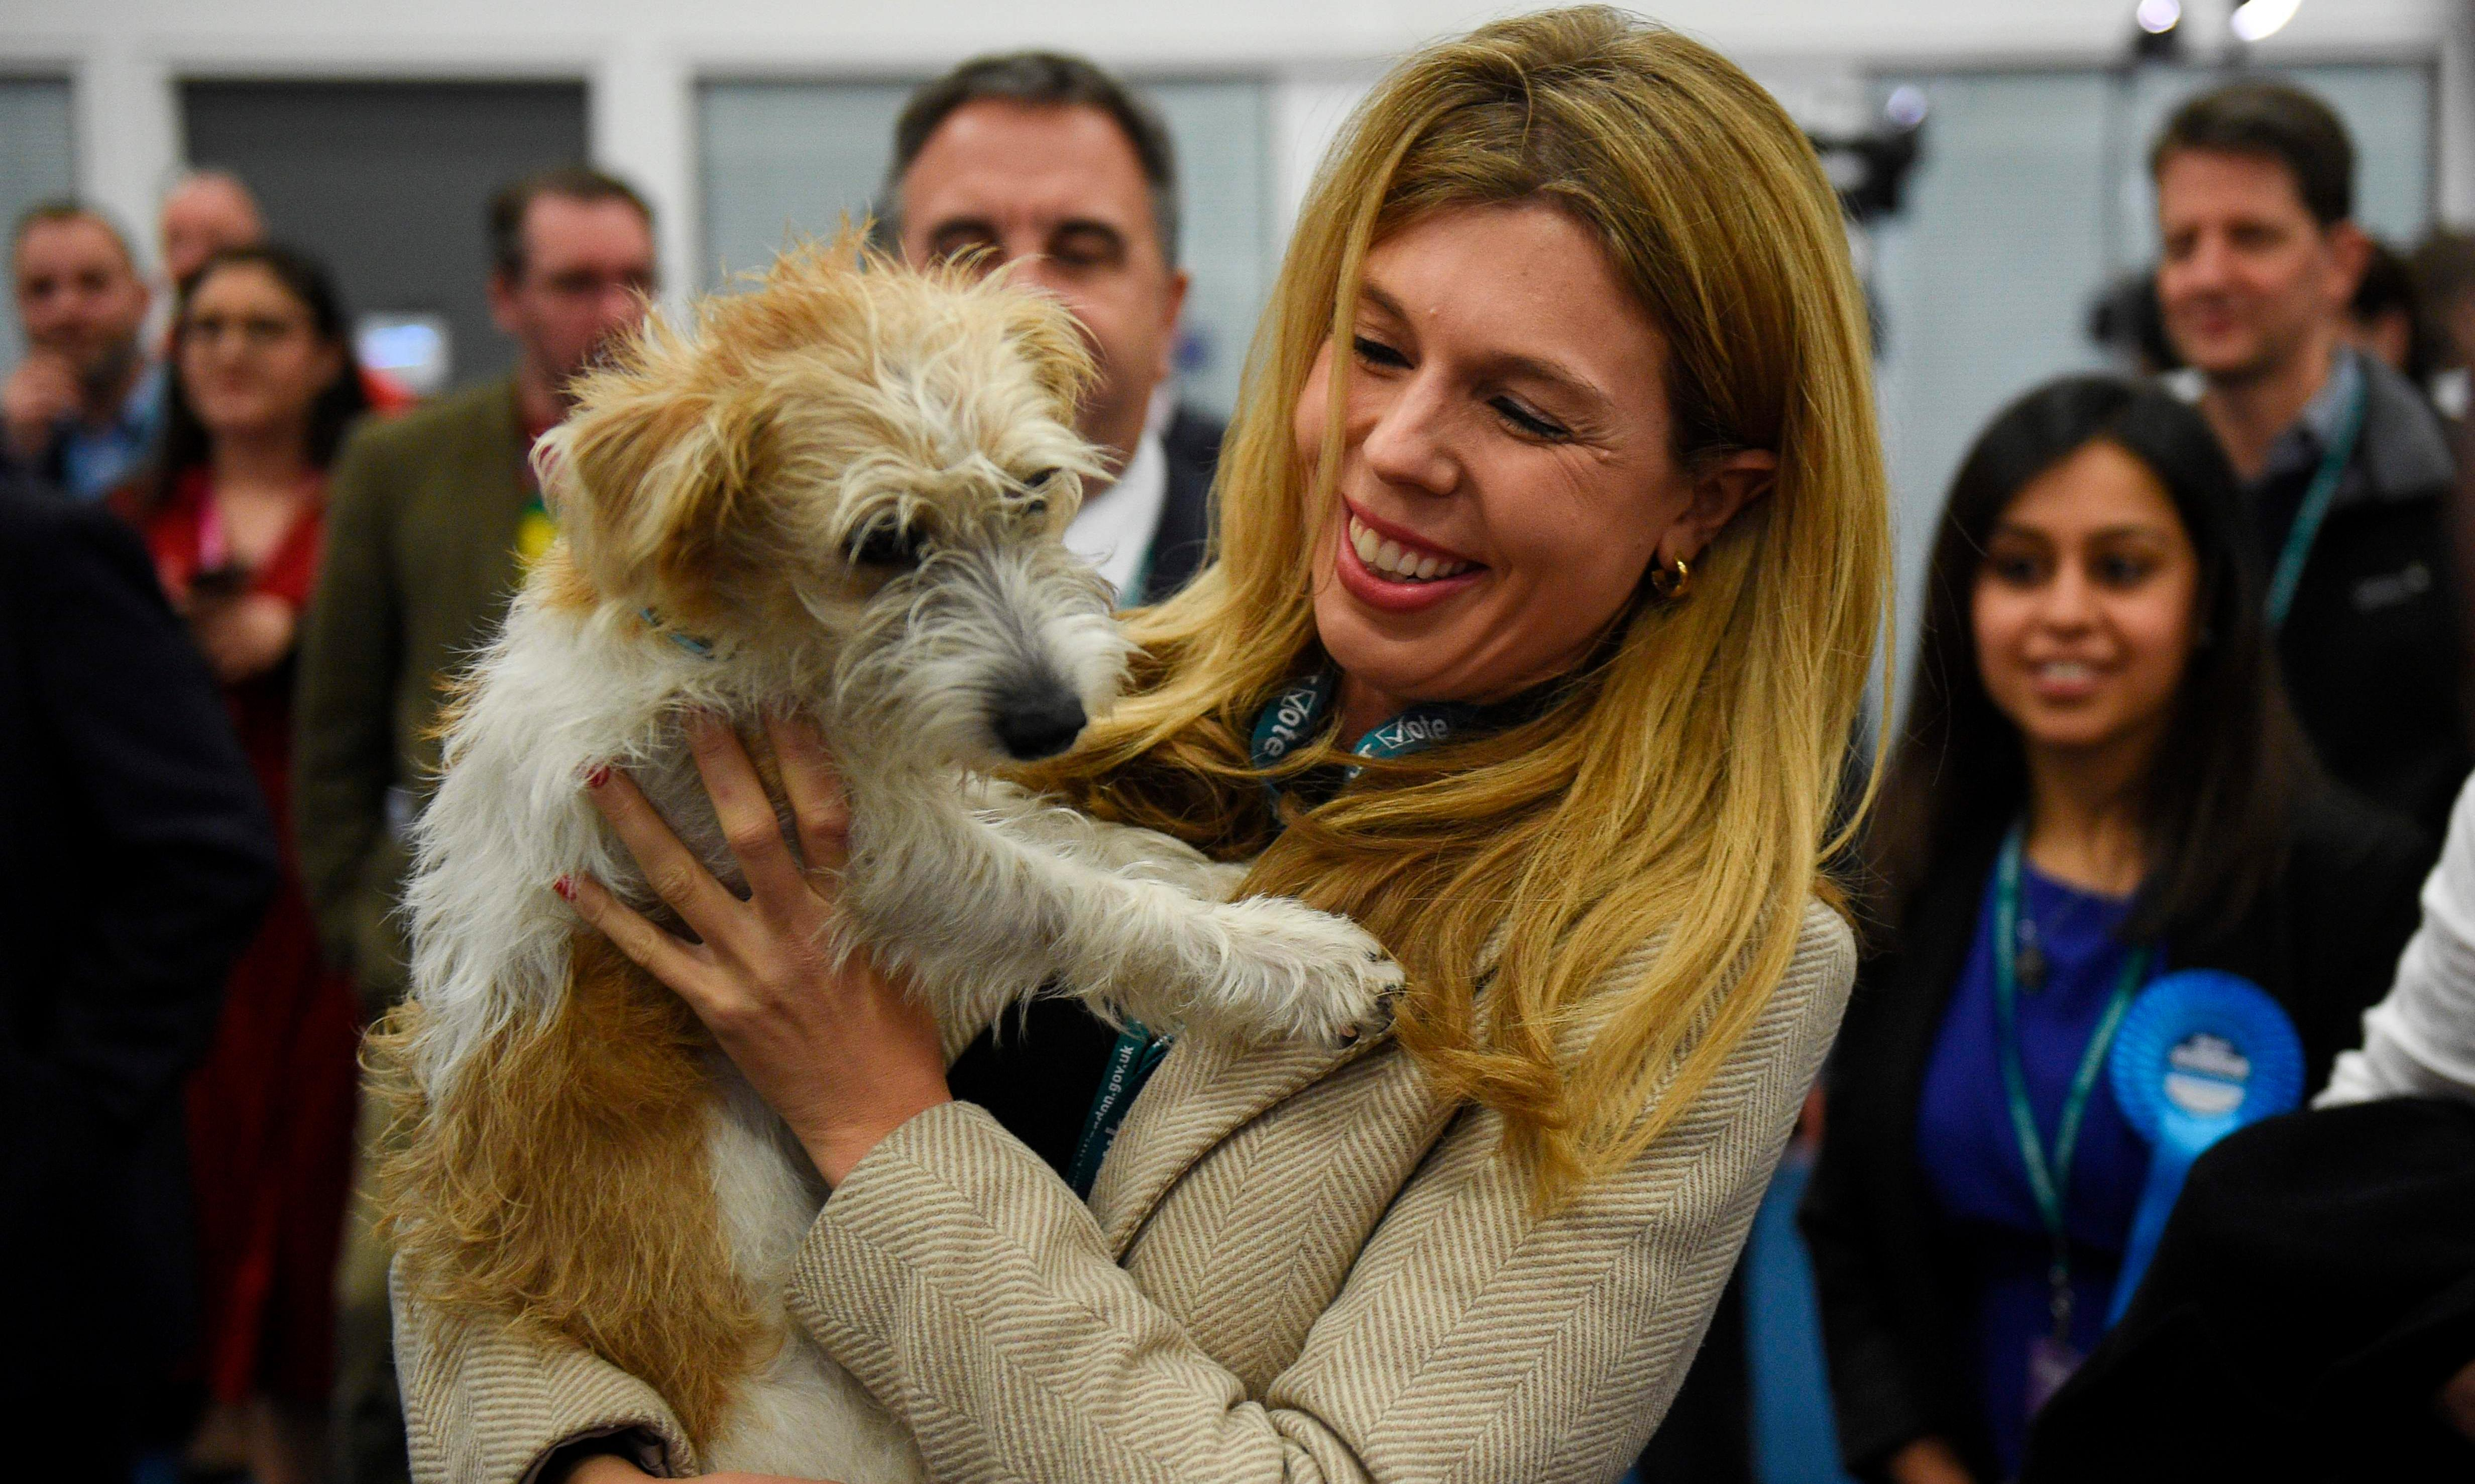 Court to probe Carrie Symonds' influence on PM after cancellation of badger cull